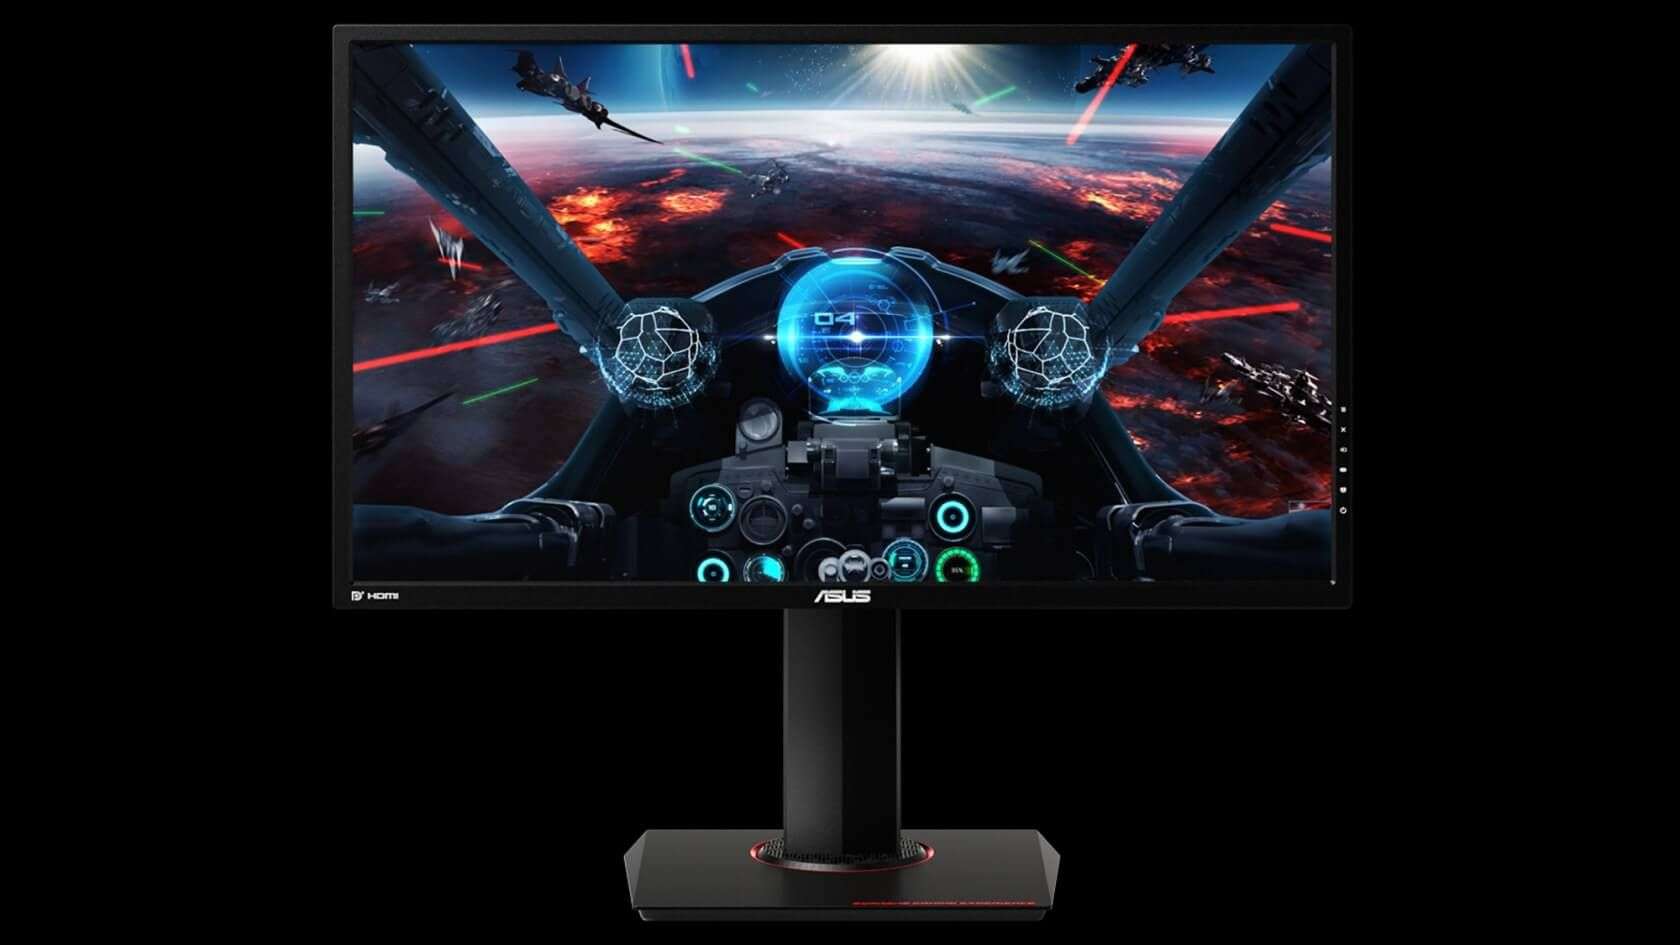 Asus Mg28uq Monitor Speakers For Sale Gaming Accessories